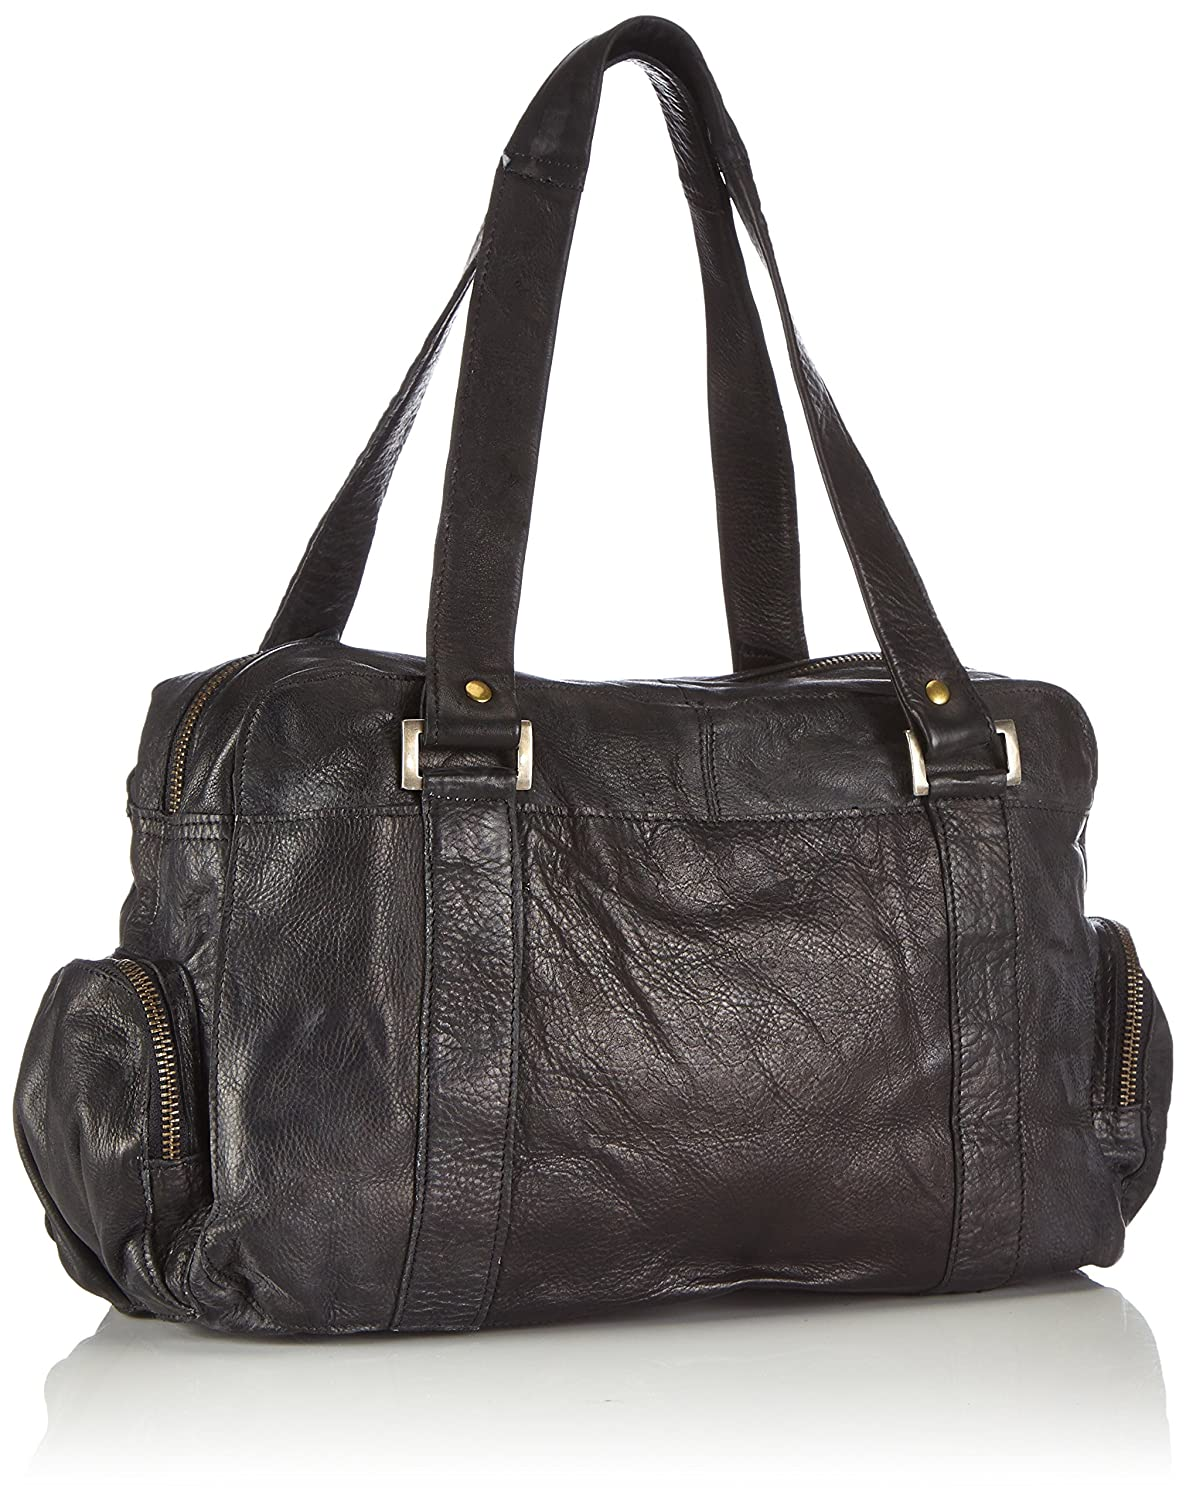 Pieces Totally Royal, Sac porté épauleNoir (Black)